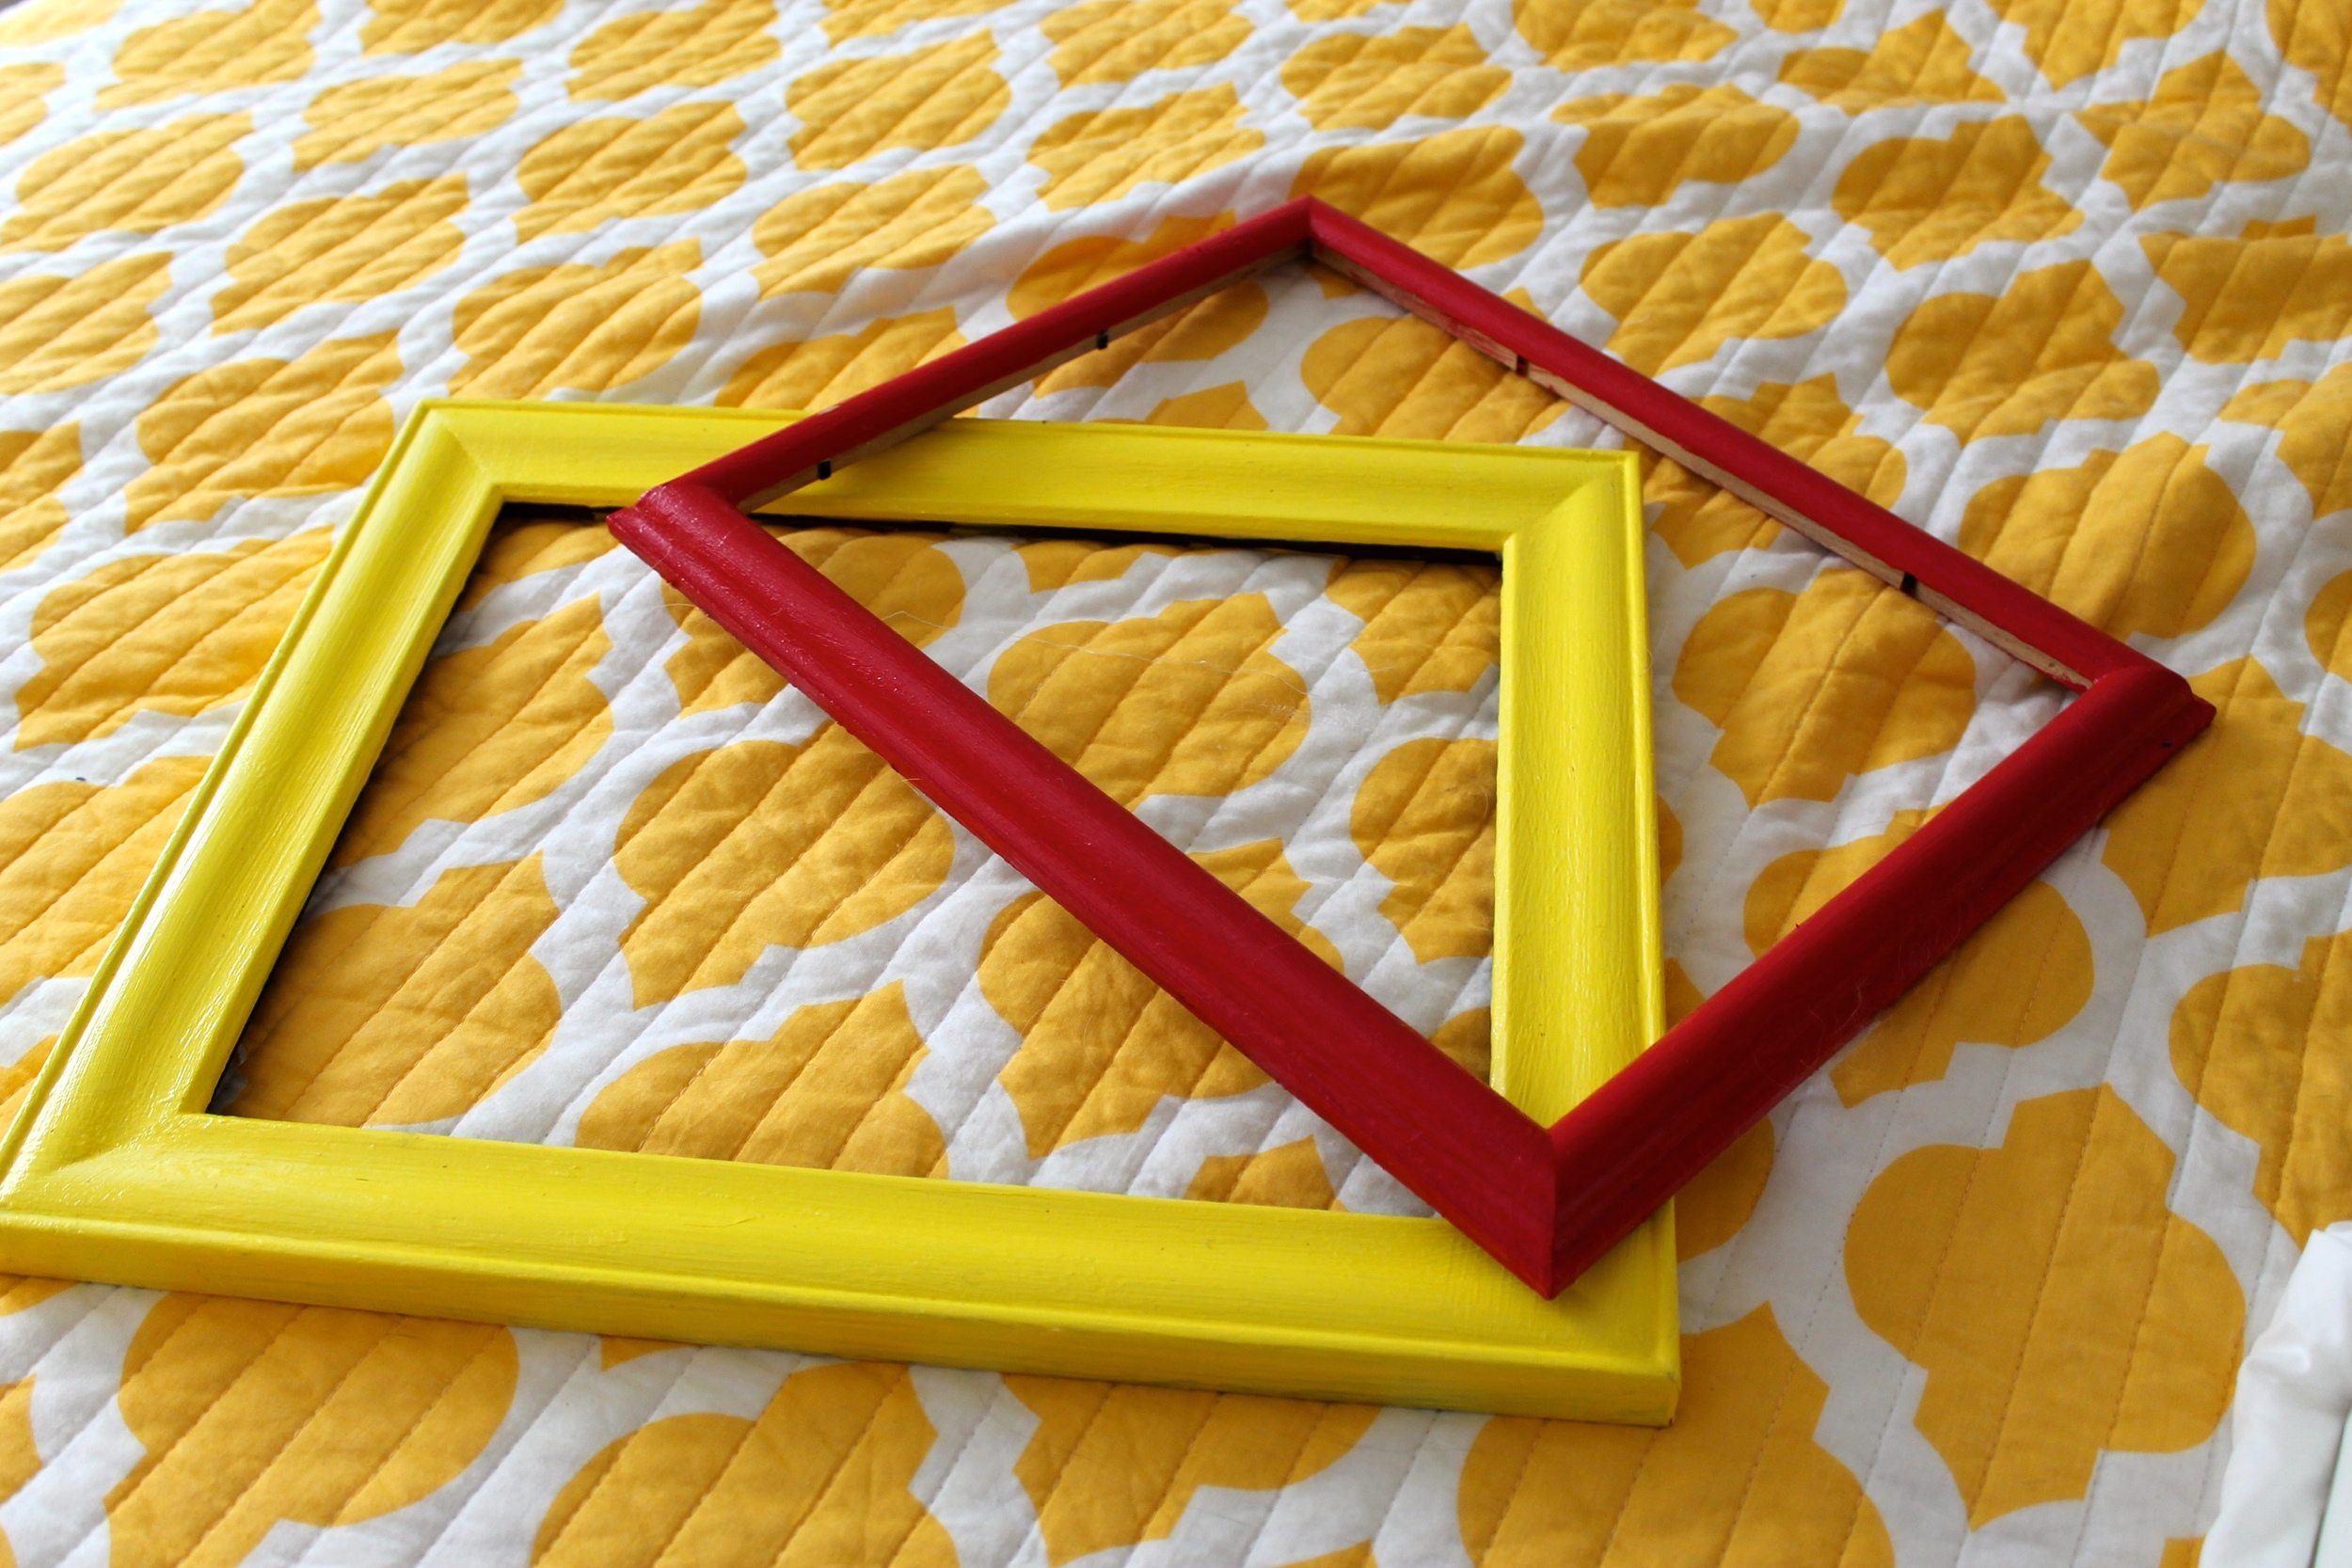 Thrift store picture frames after being painted, one red, one yellow